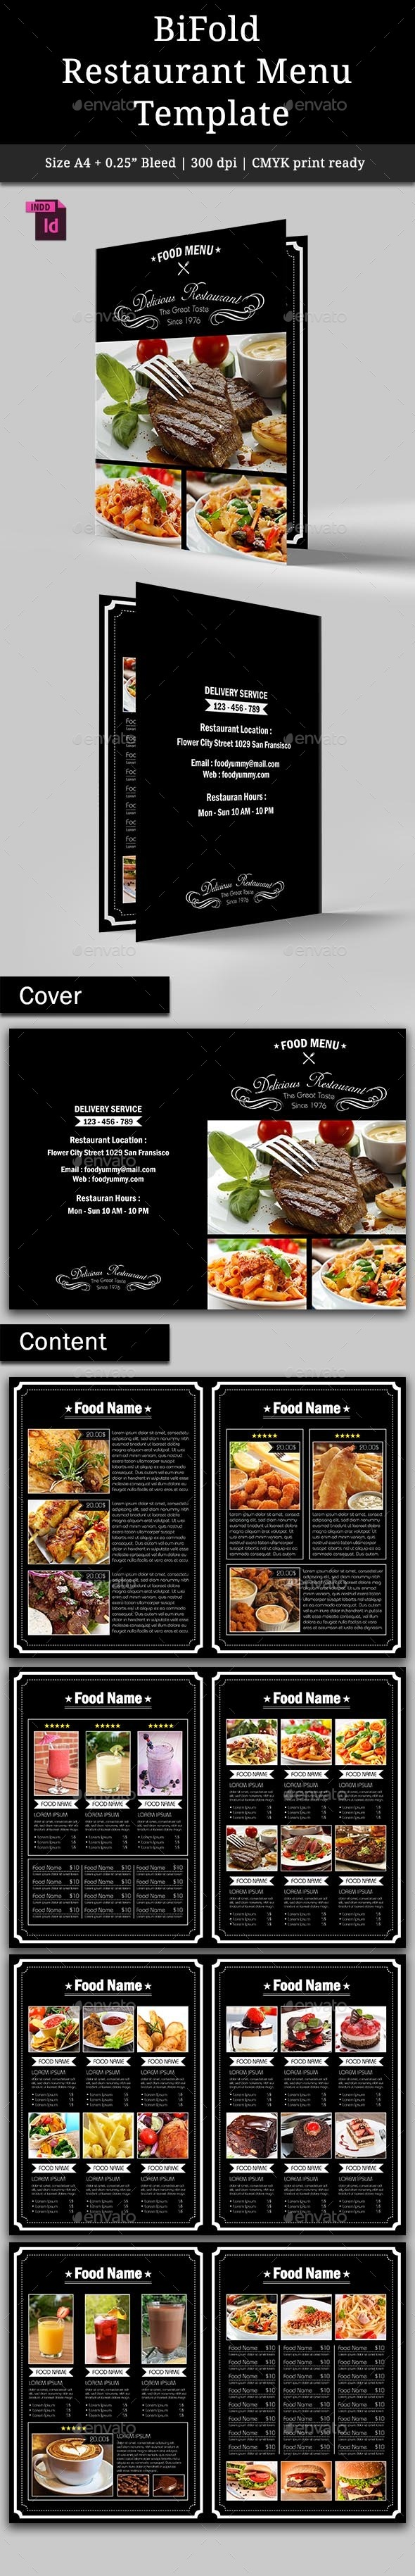 BiFold Restaurant Menu Vol. 2 - Food Menus Print Templates